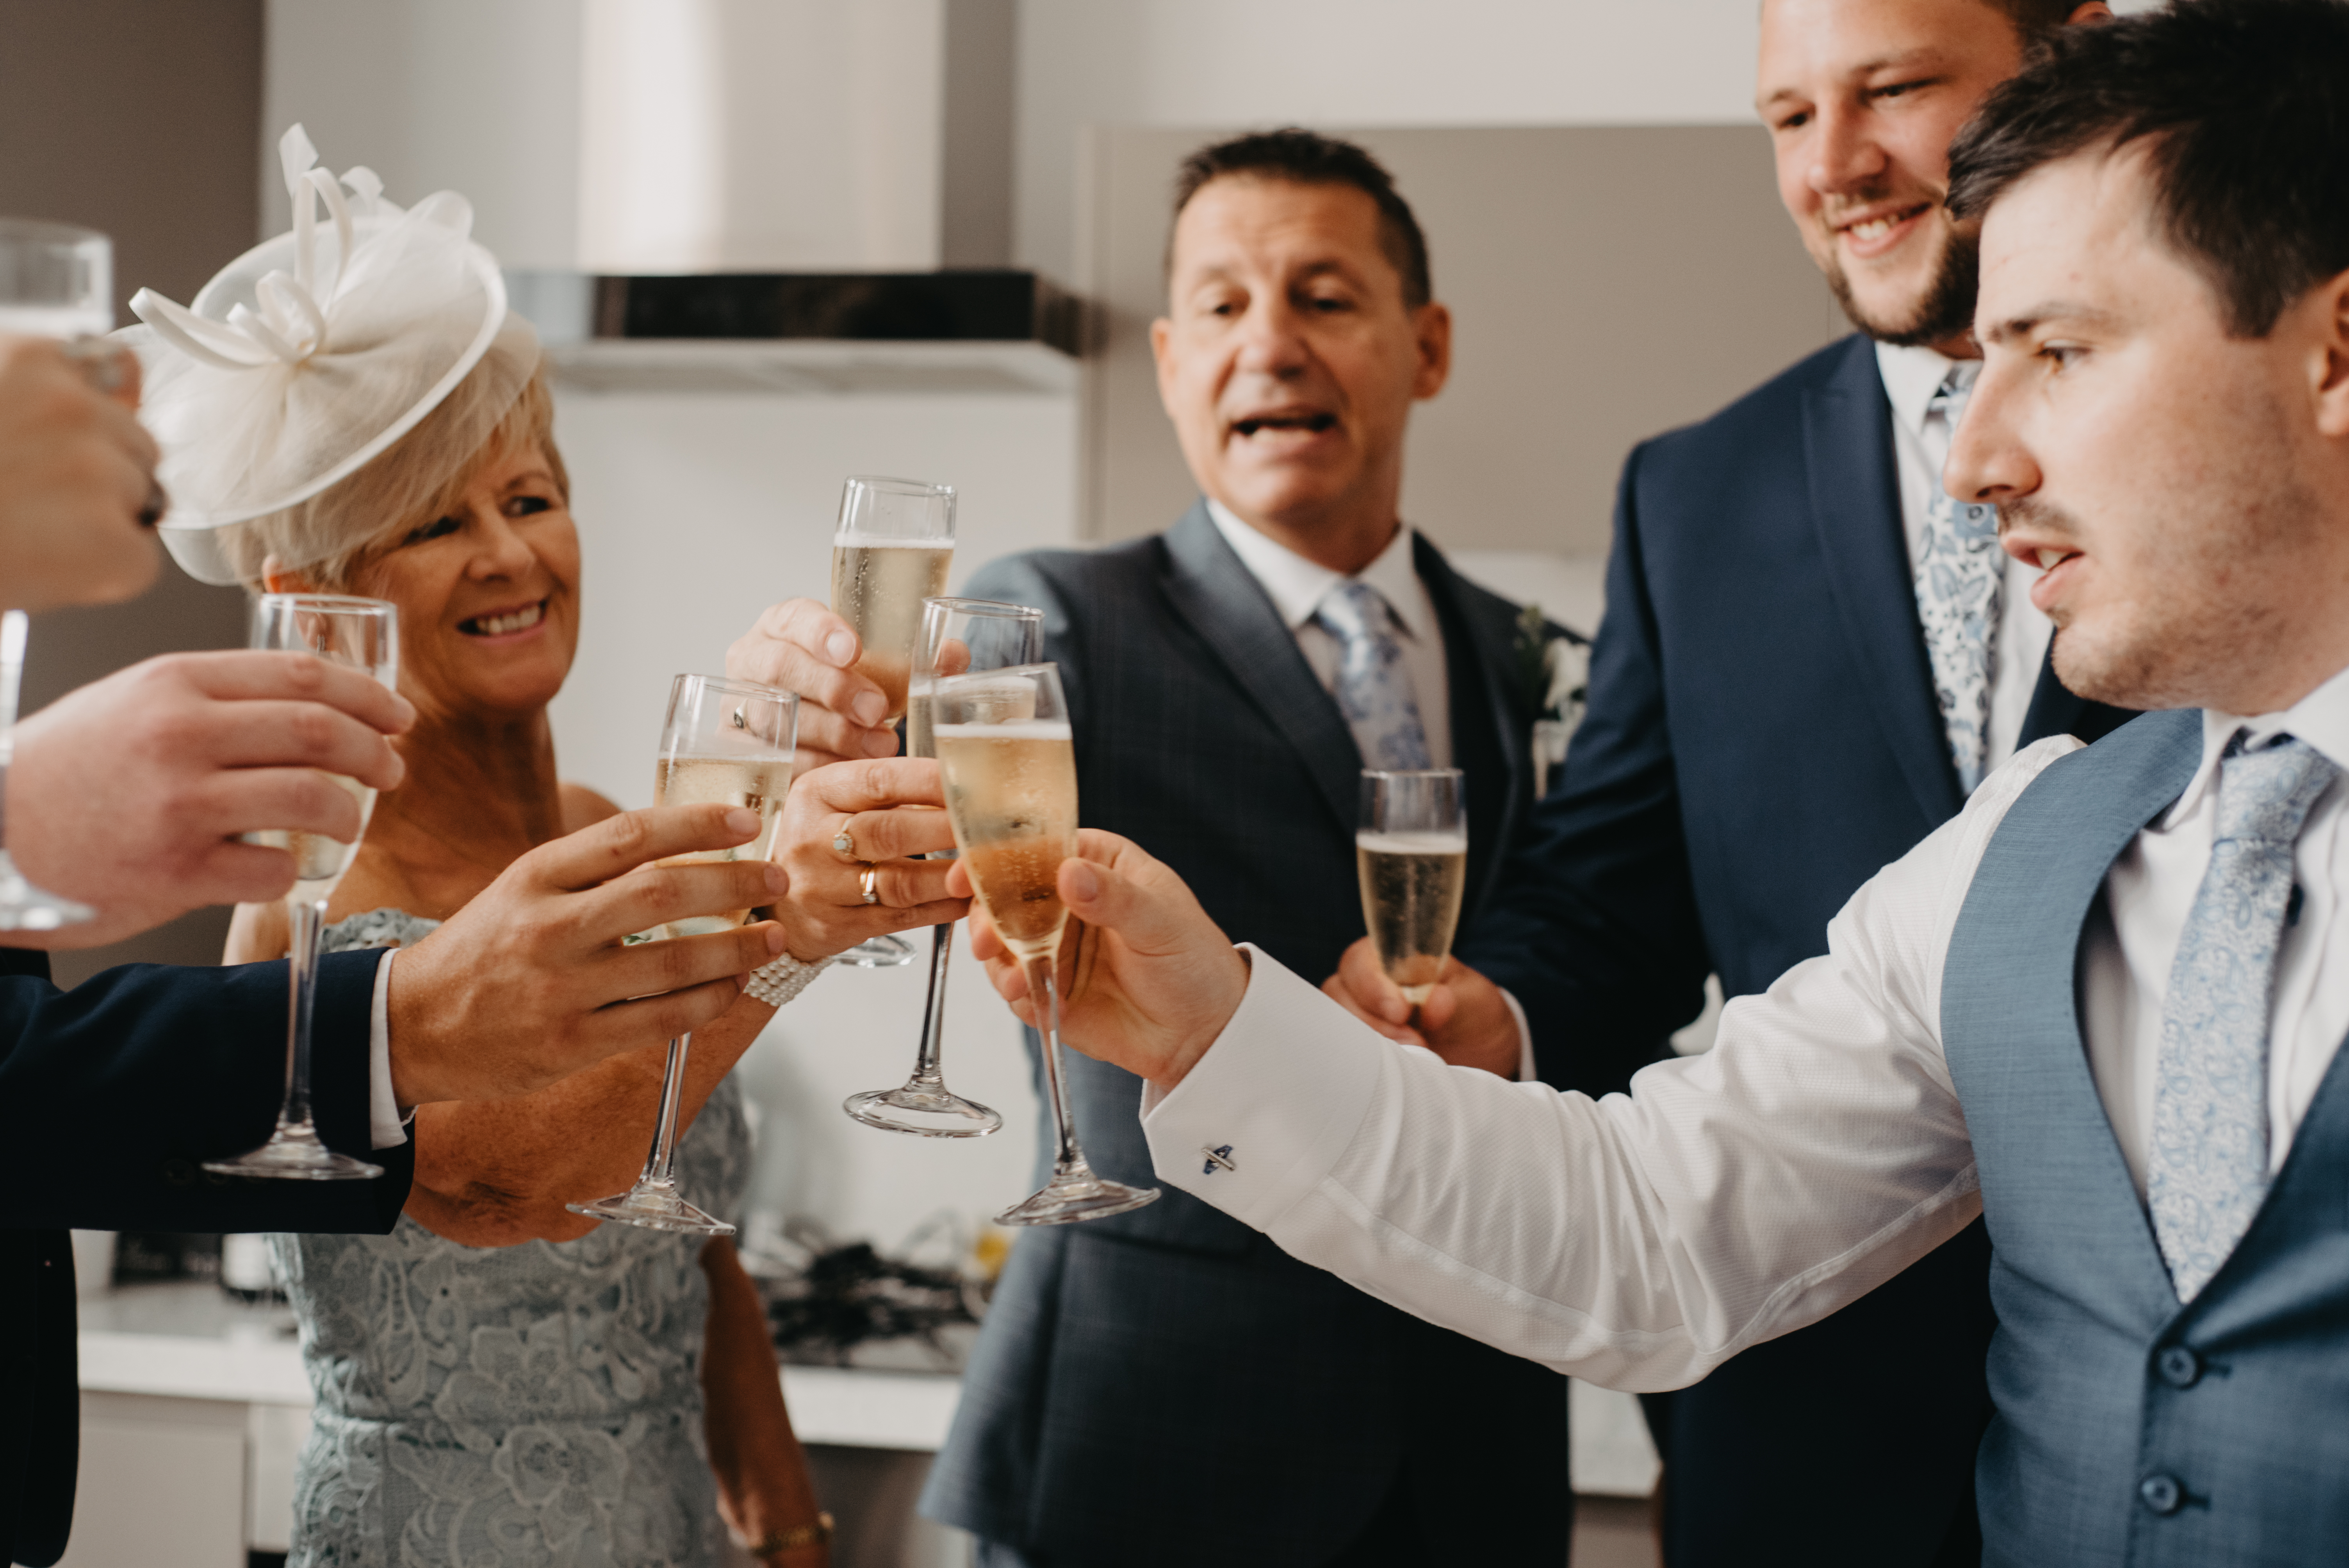 Groom and groomsmen have a champagne toast before the wedding